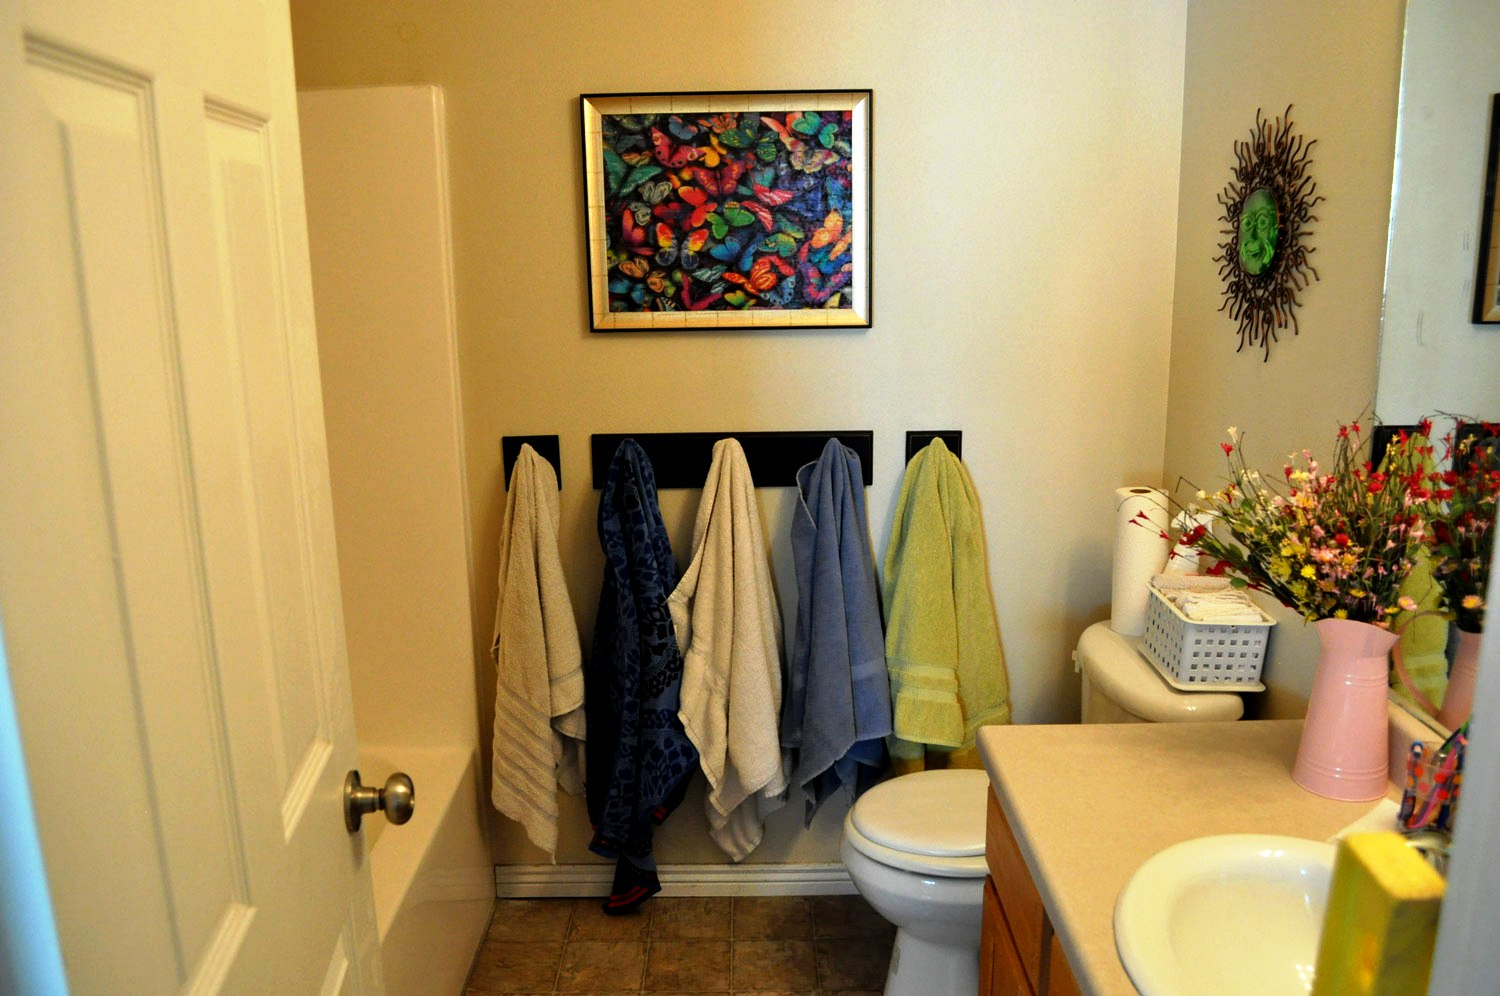 Superieur Unique Bathroom With Colorful Painting Also Towel Hooks And Toilet